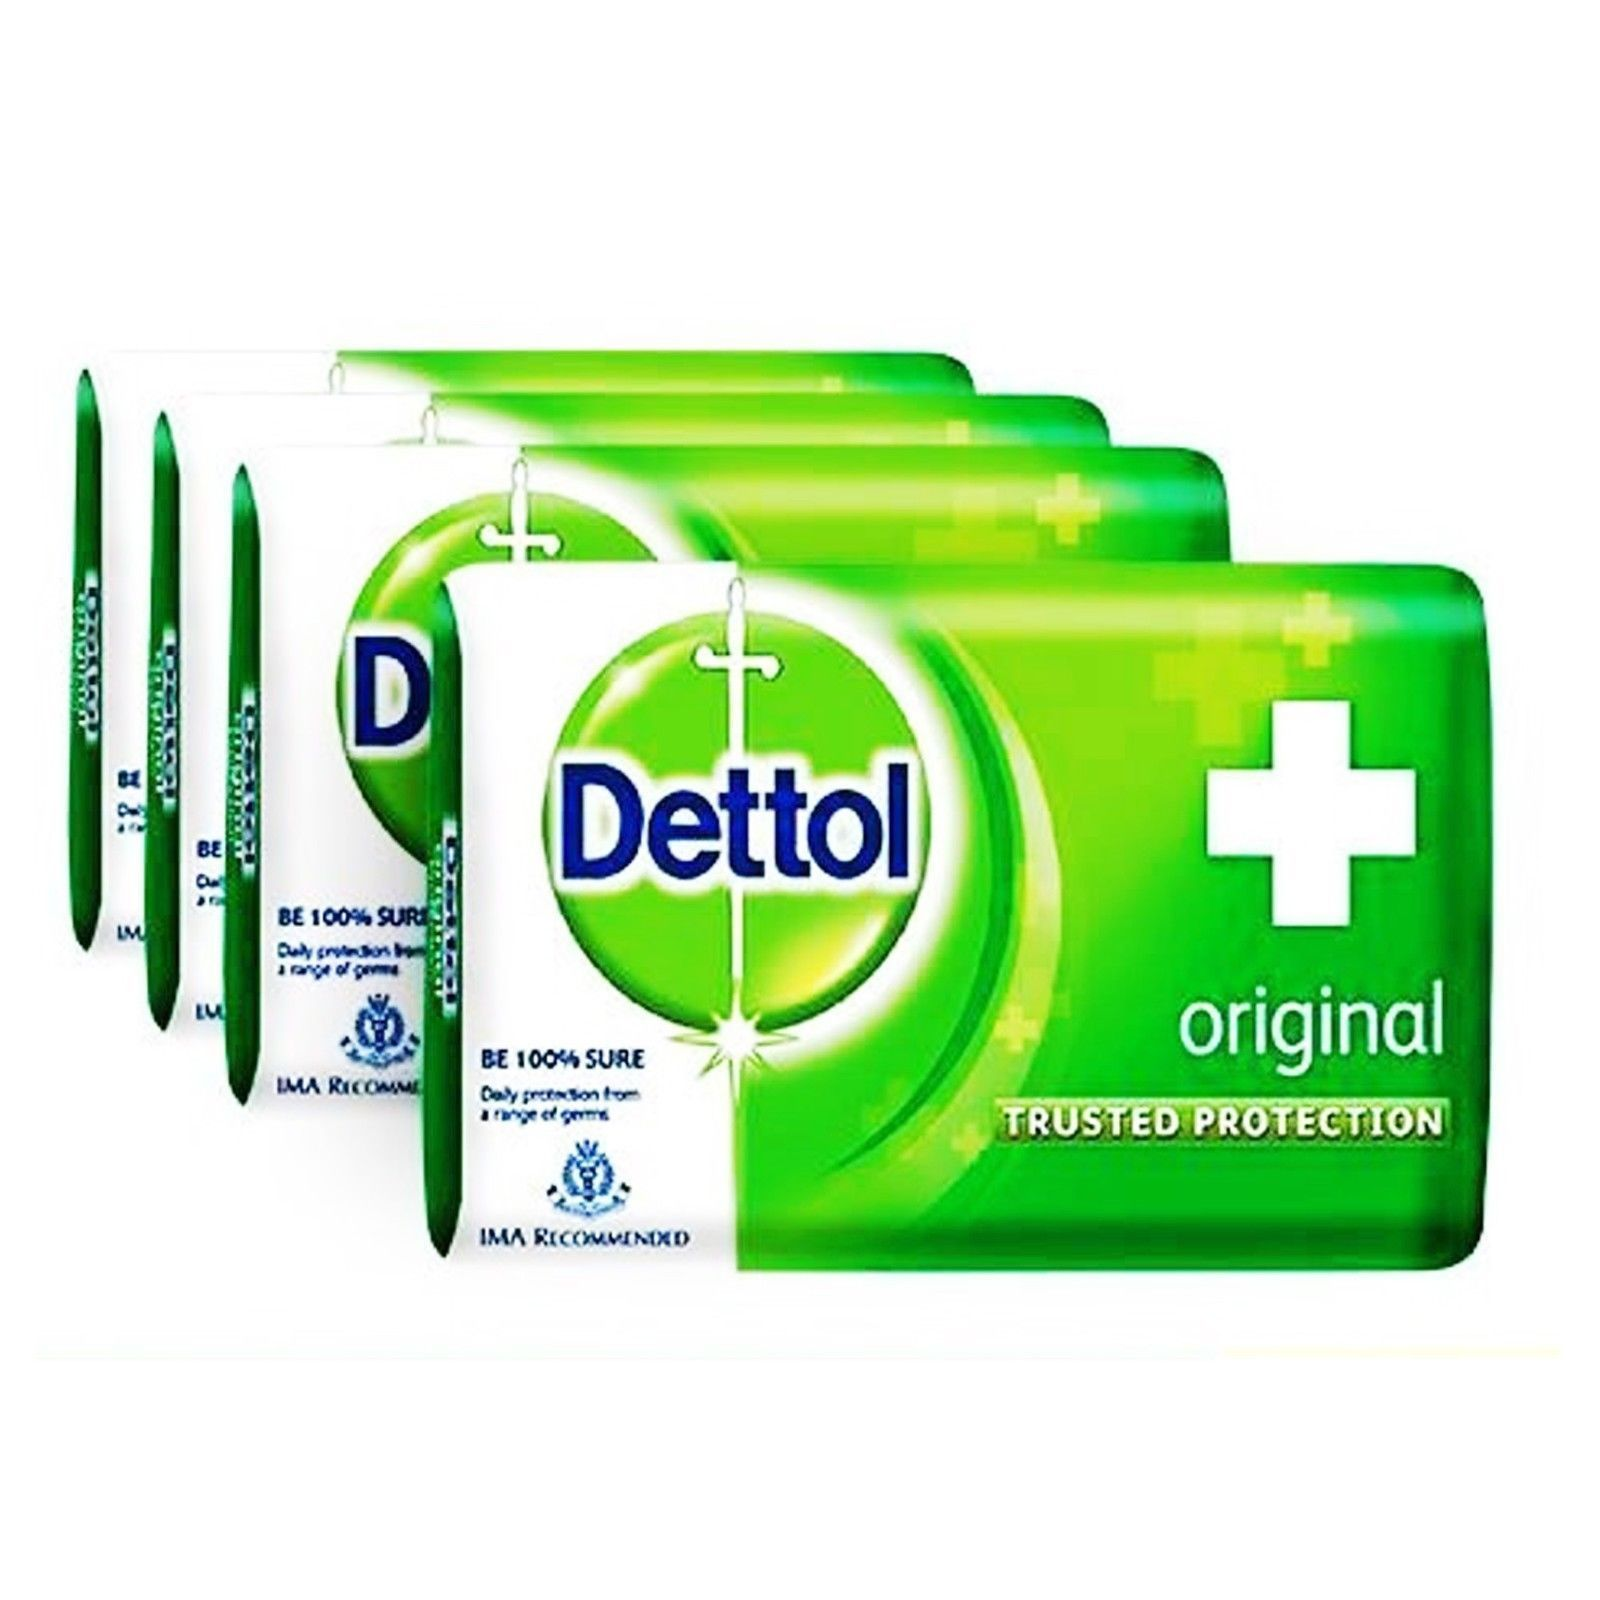 Dettol Orignal Soap Trusted Protection for Family Orignal 75 gm x 12 pack